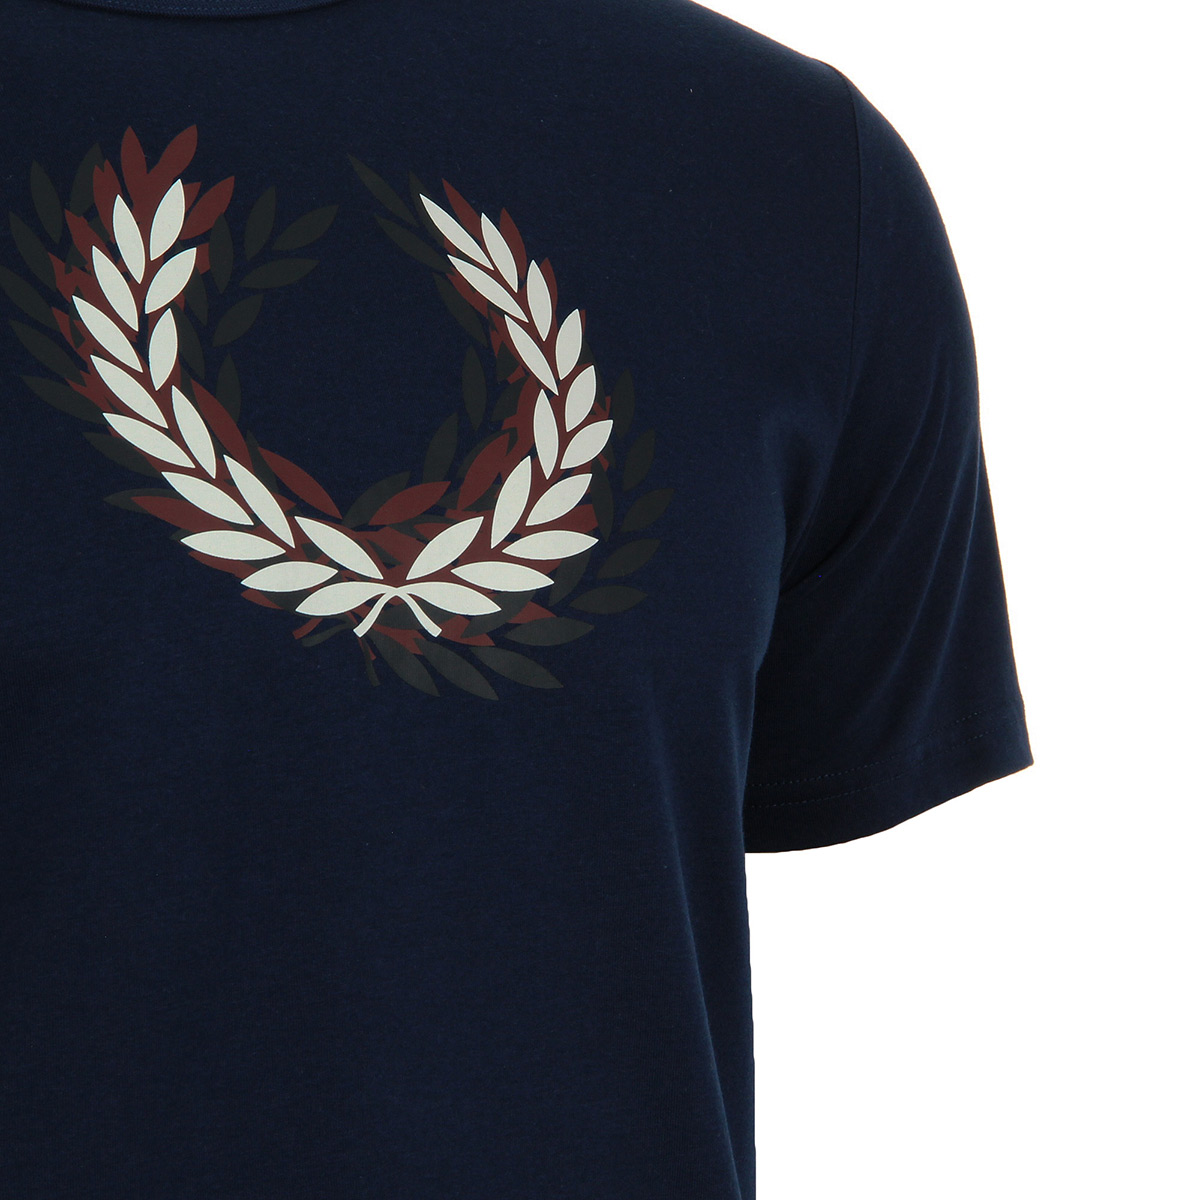 Fred Perry Distorted Laurelwreath T-shirt French Navy M3602143, T-Shirts homme